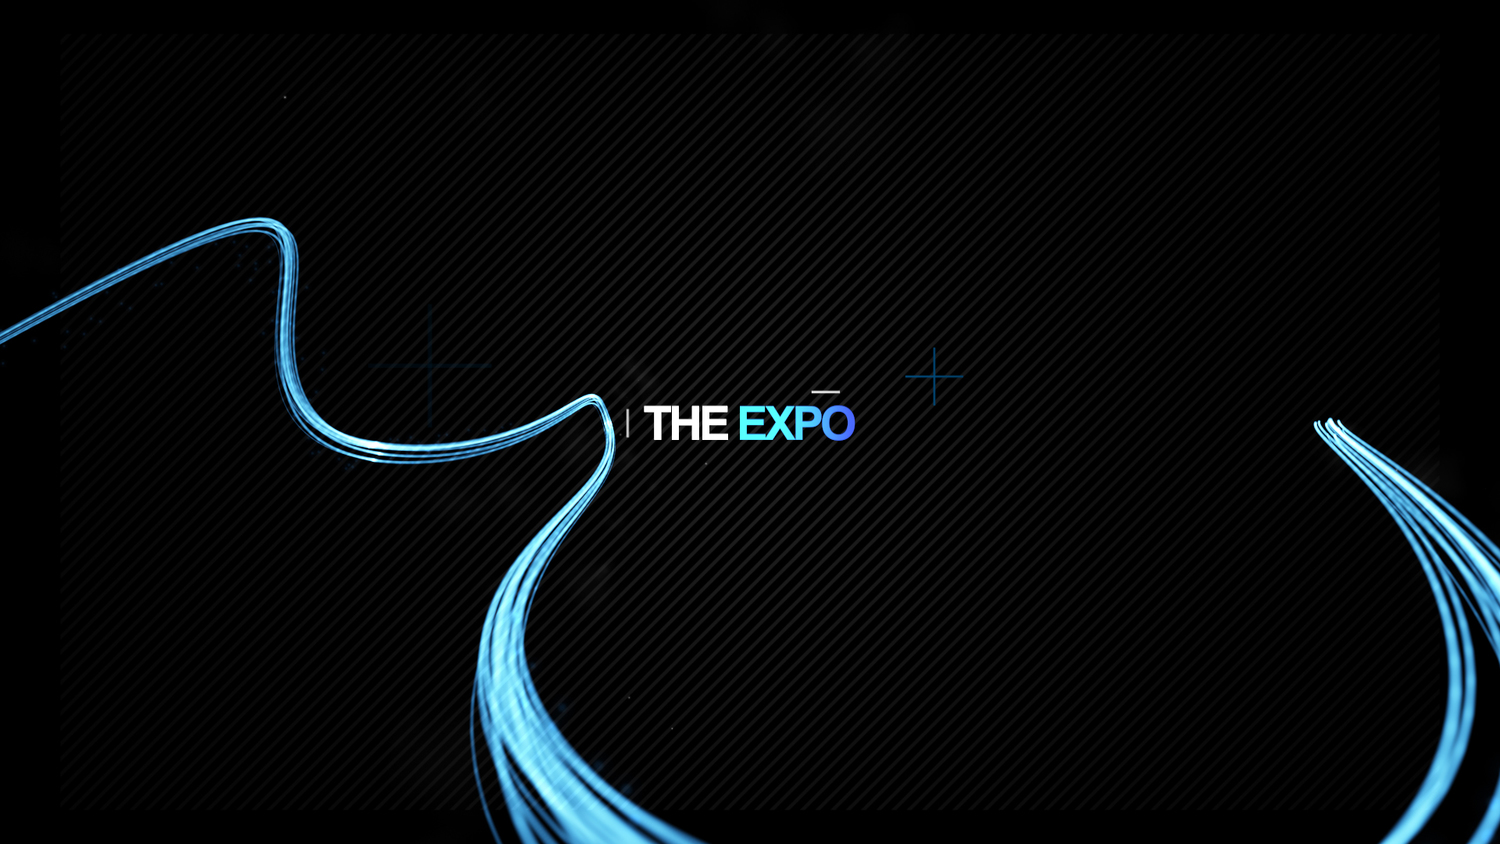 The Expo - After Effects Template — DropDrop.com - After Effects ...